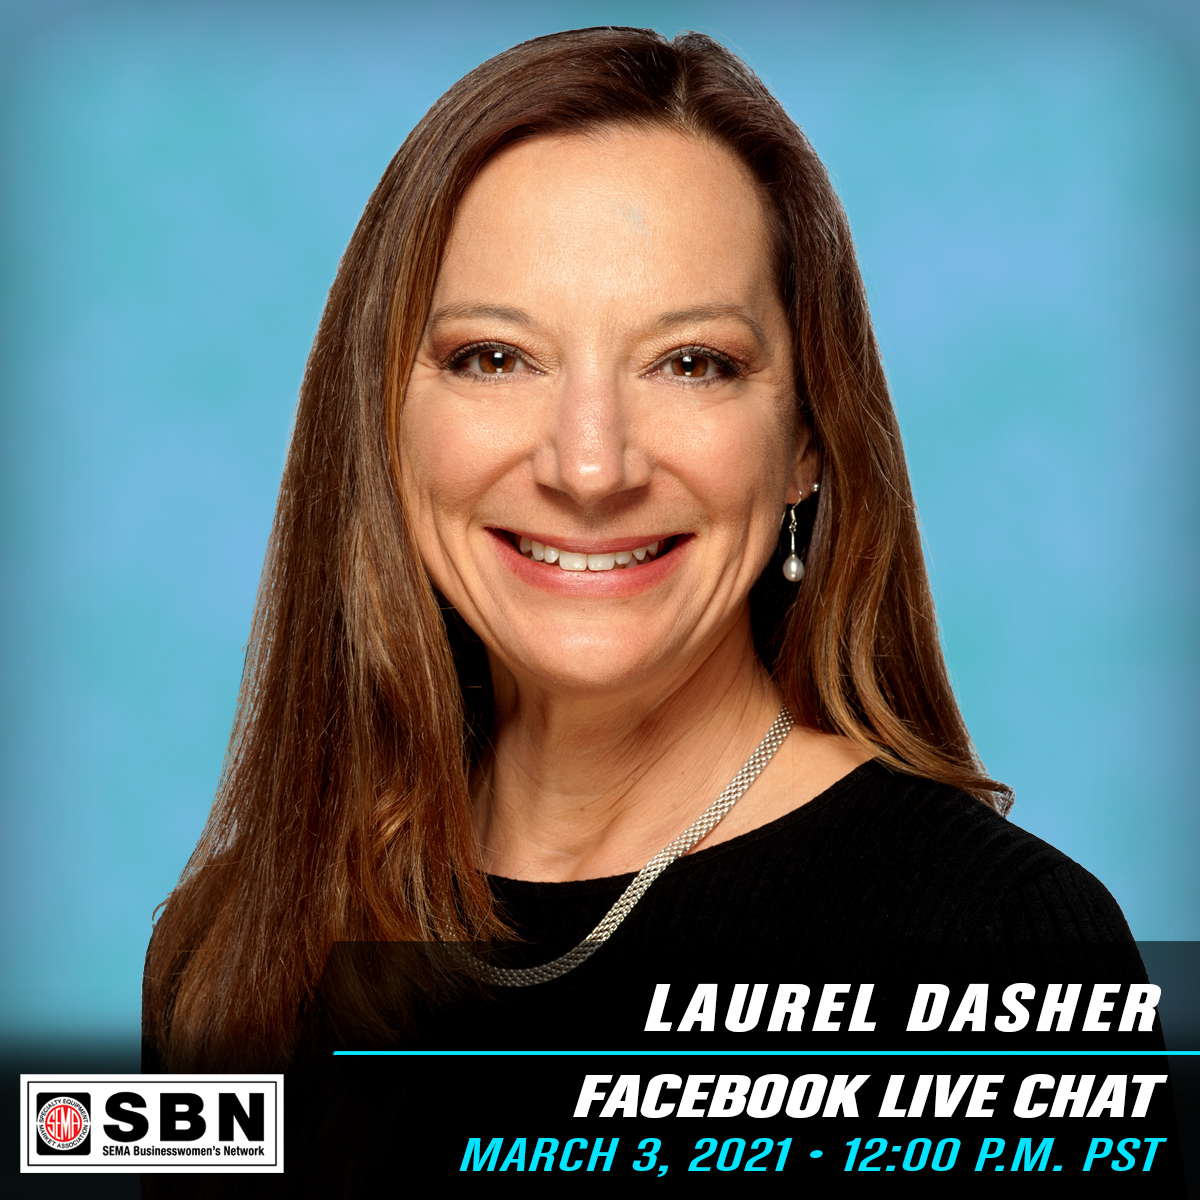 SBN Live Chat with Laurel Dasher